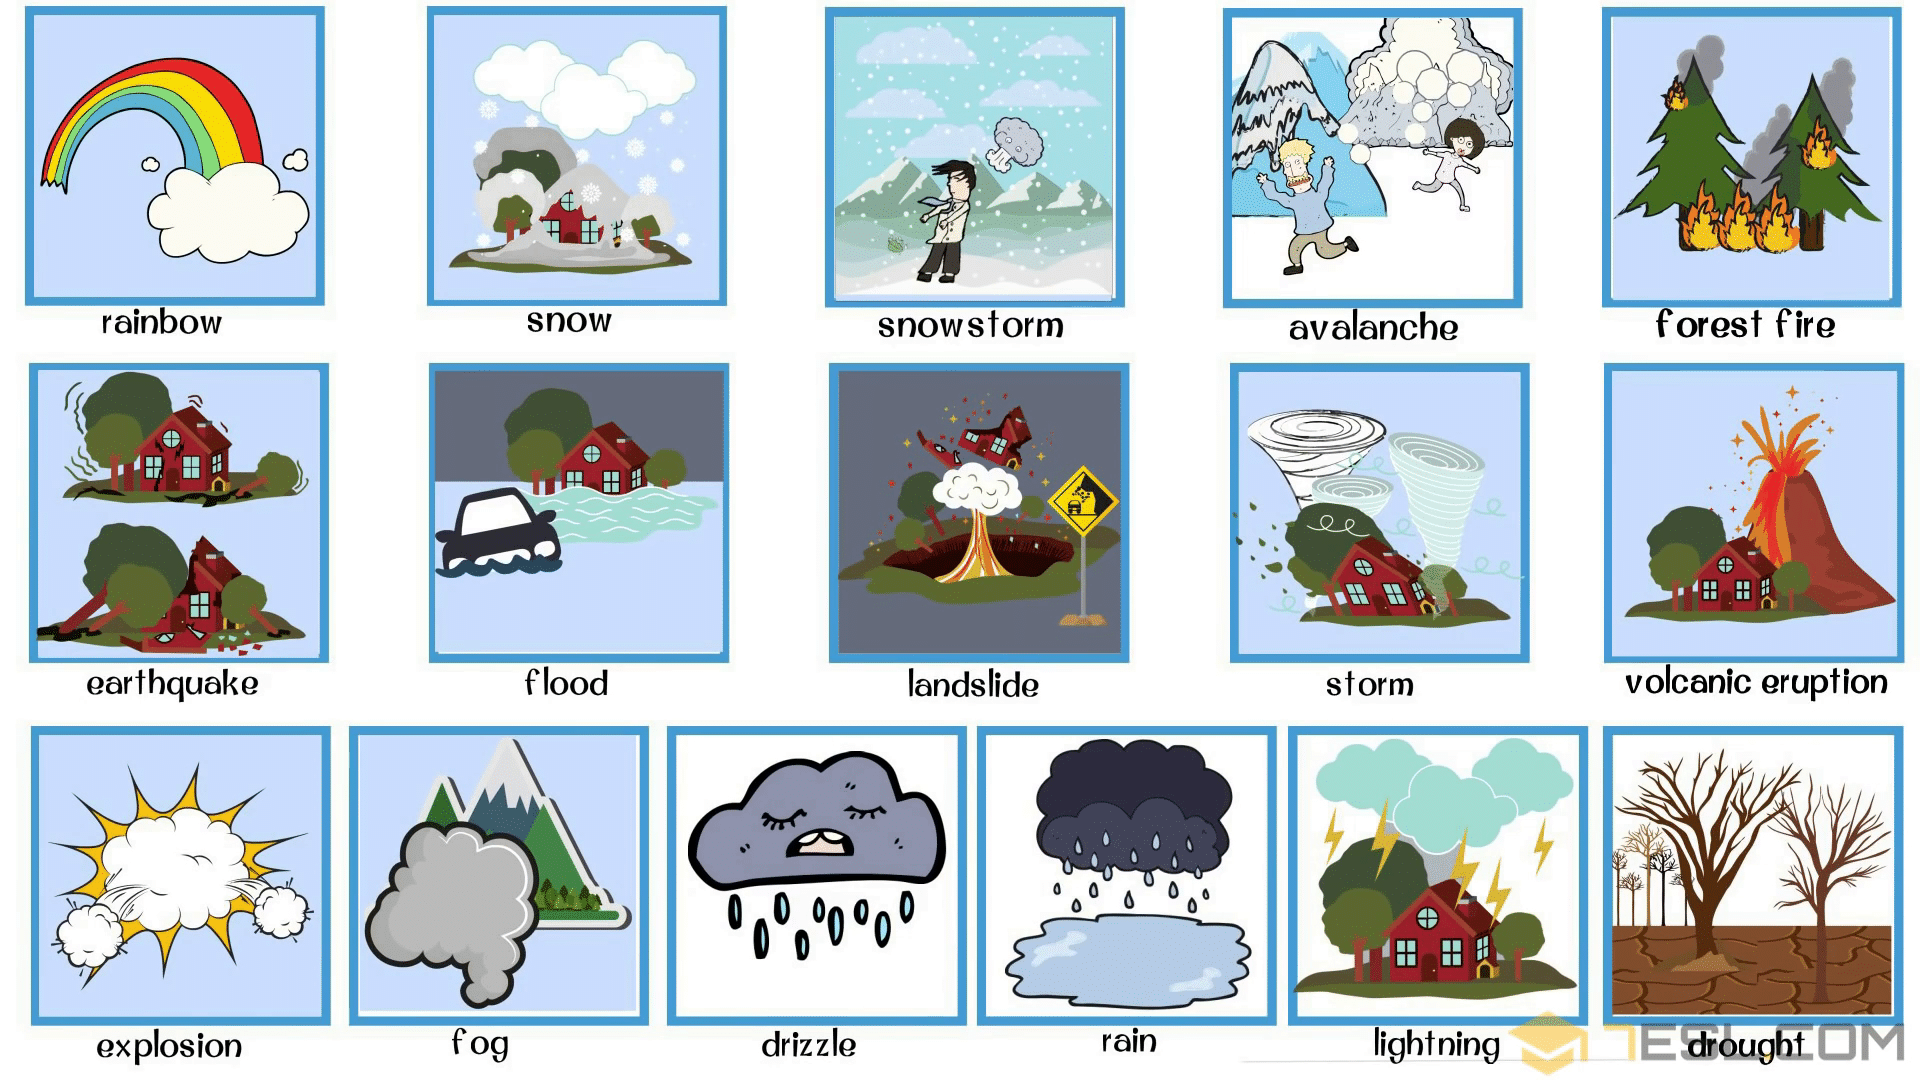 Natural Disasters List With Pictures And Examples 7esl Natural Disasters List Natural Disasters Natural Disasters Lessons [ 1080 x 1920 Pixel ]